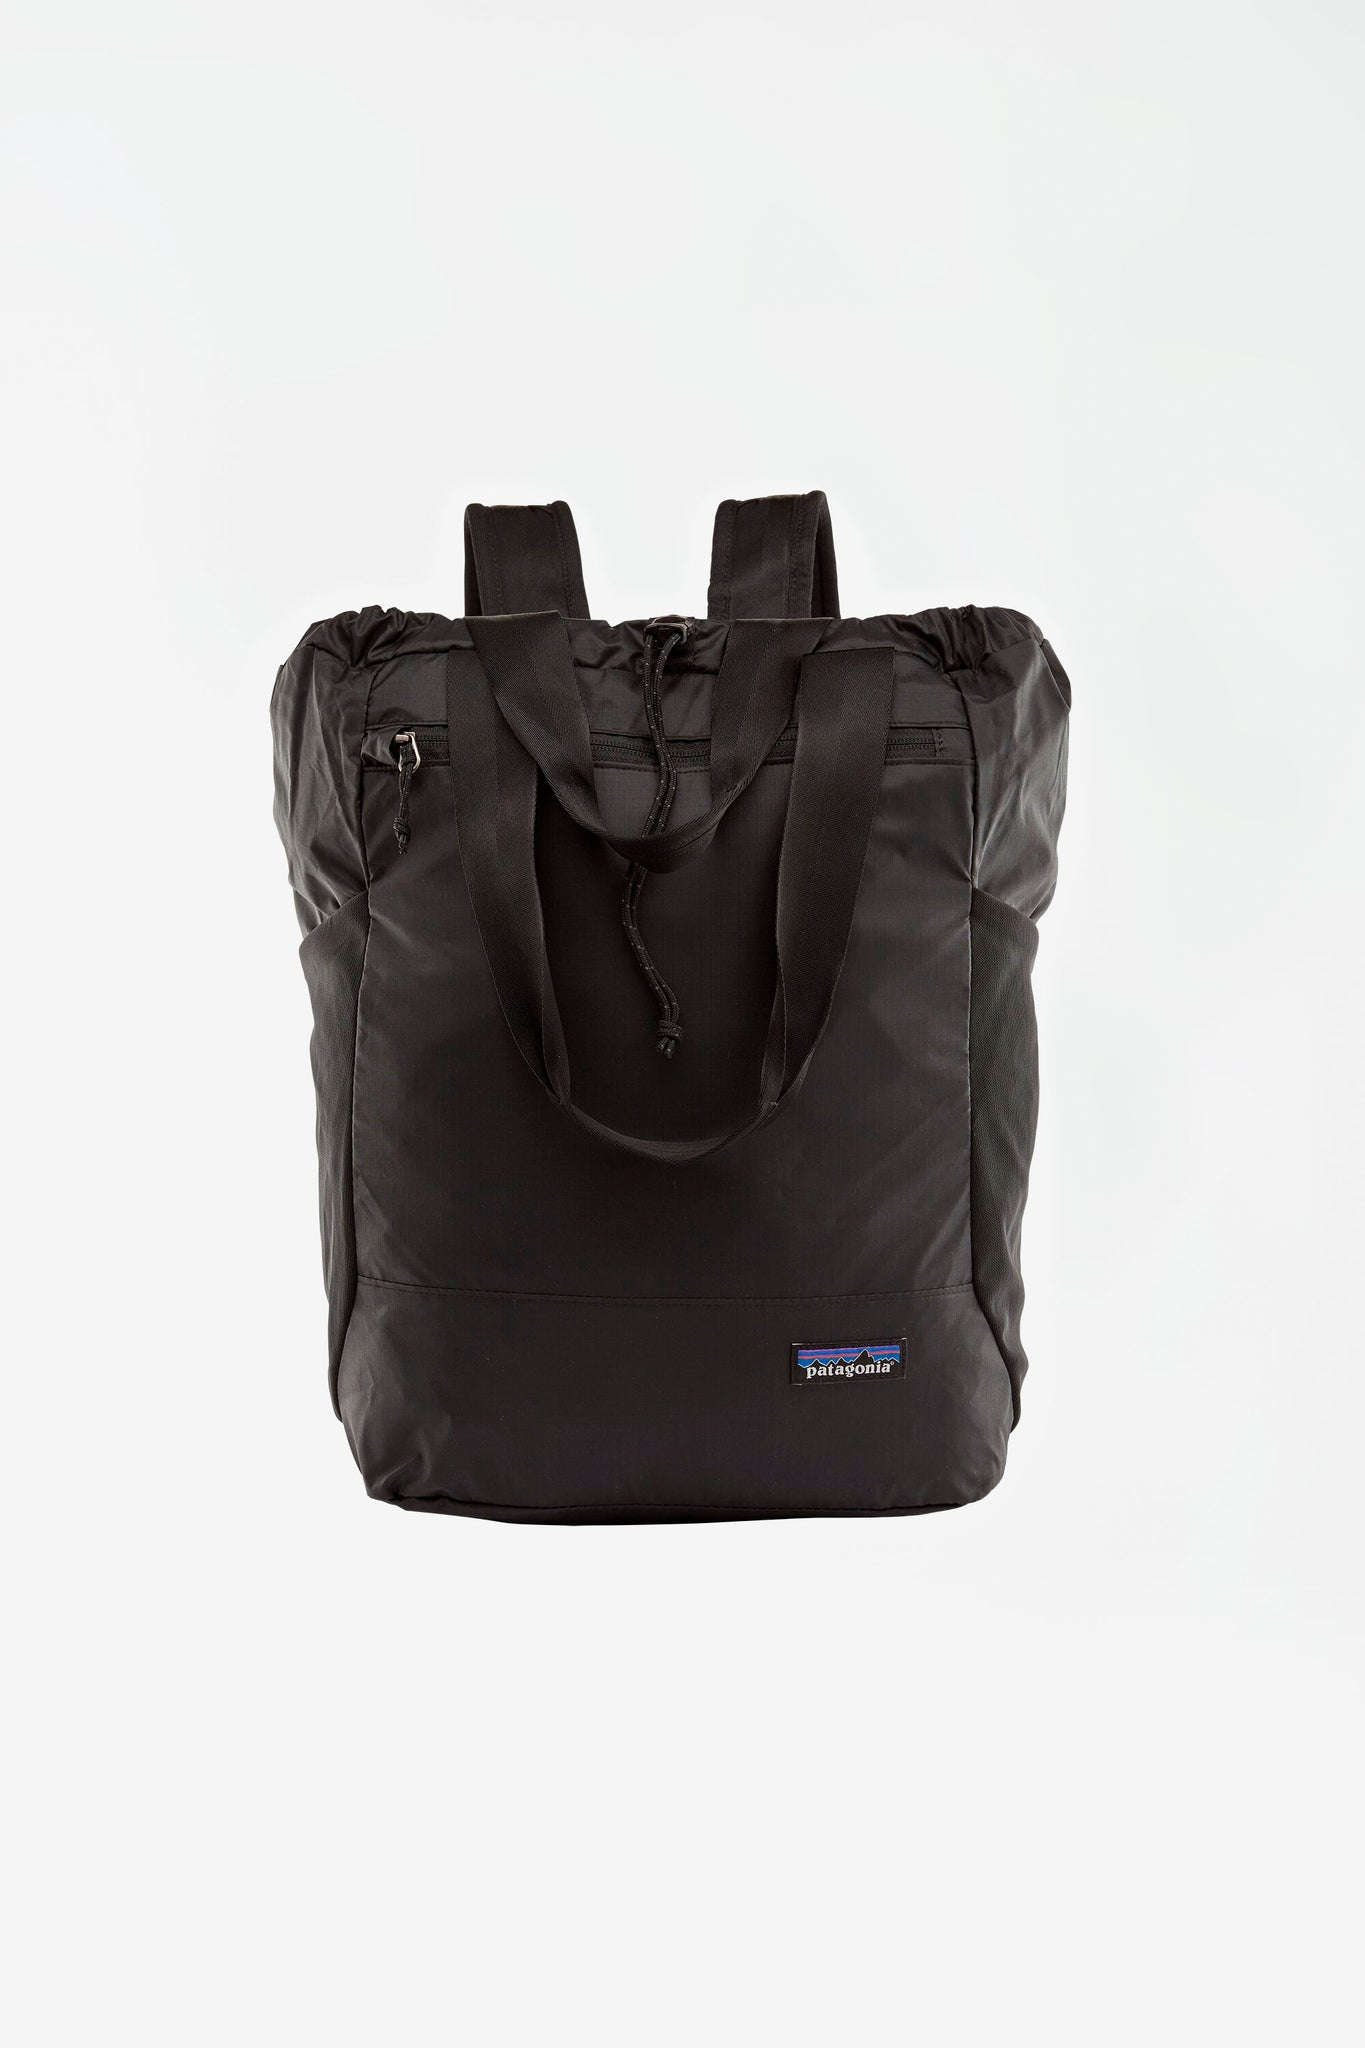 Ultralight blackhole tote pack 27L black